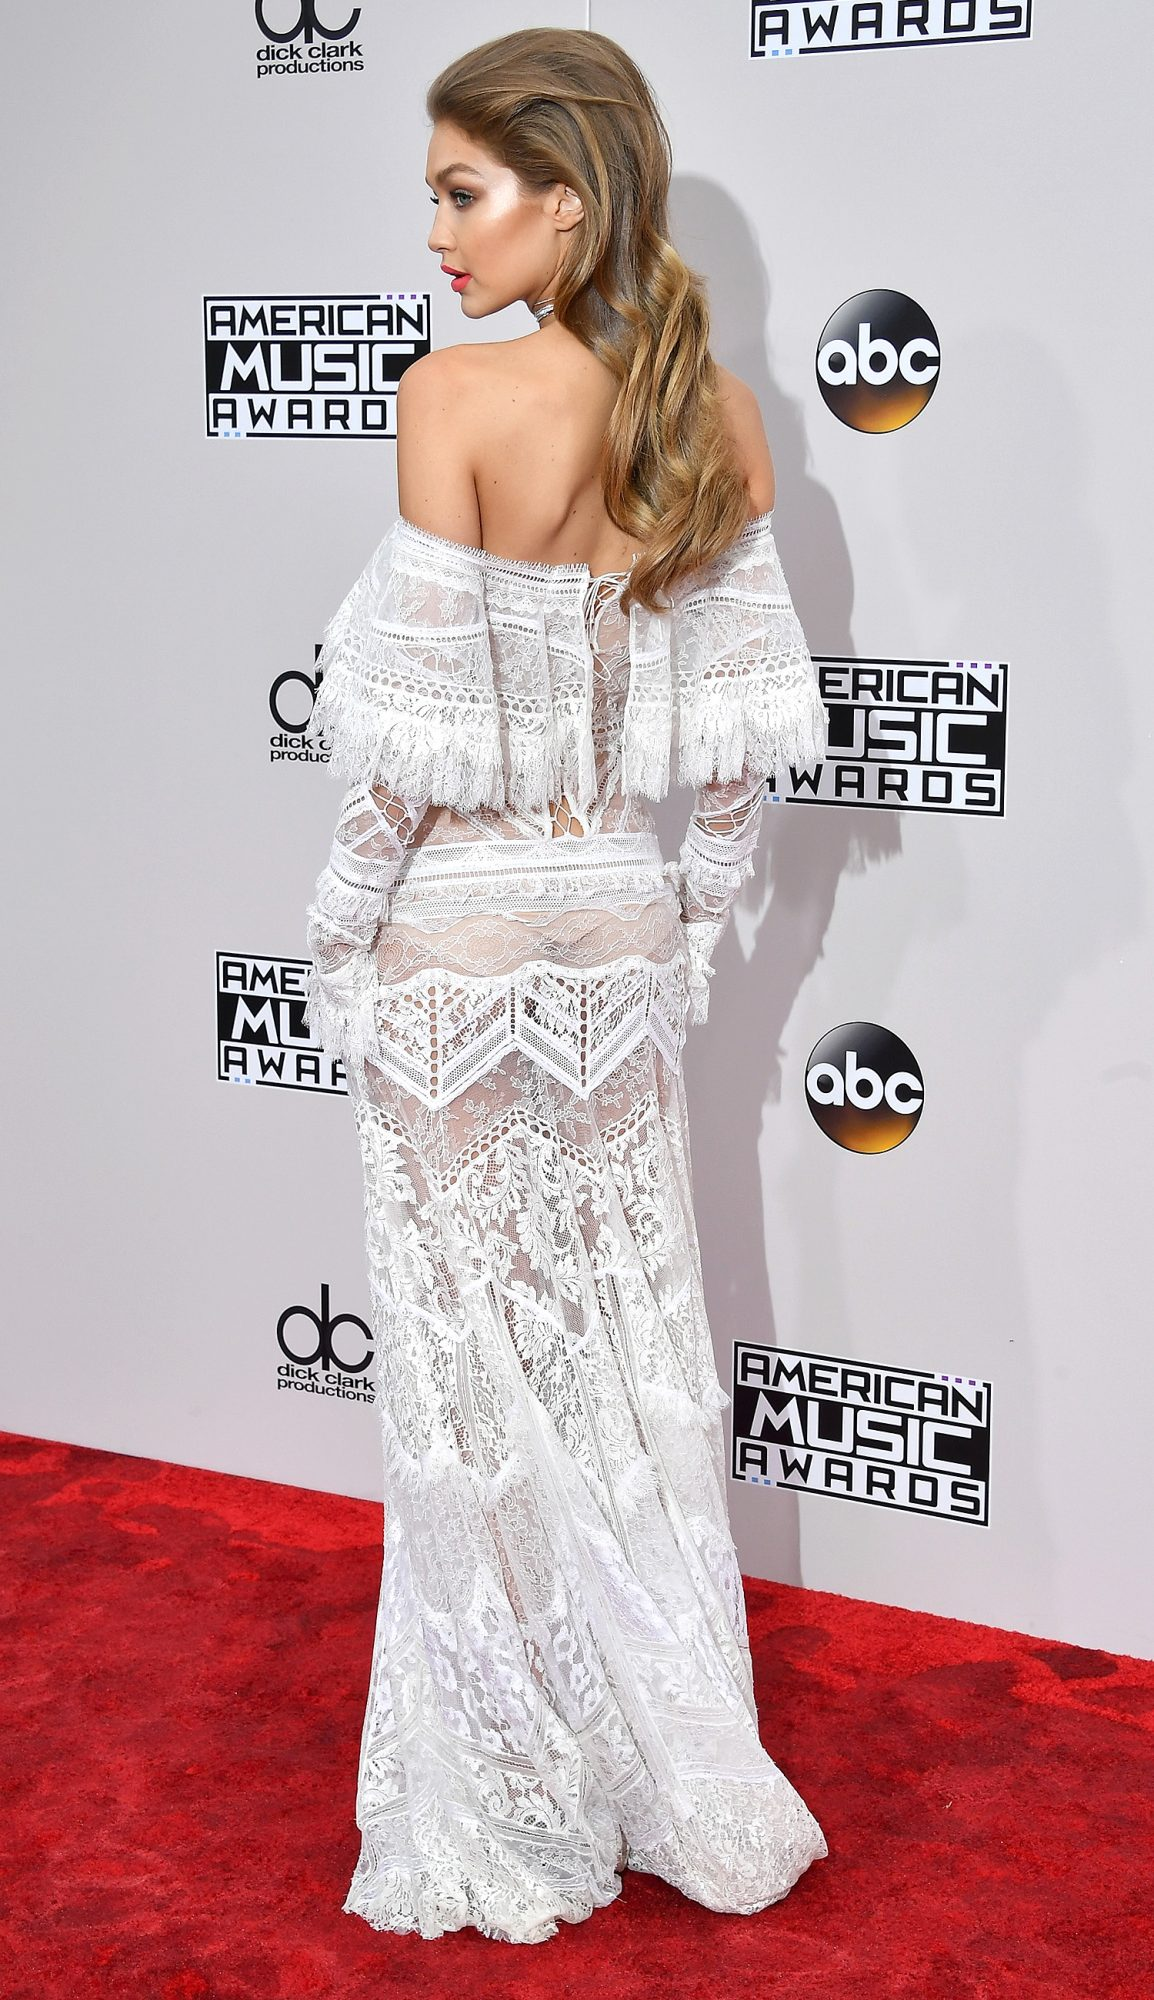 LOS ANGELES, CA - NOVEMBER 20: Model Gigi Hadid attends the 2016 American Music Awards at Microsoft Theater on November 20, 2016 in Los Angeles, California. (Photo by Steve Granitz/WireImage)